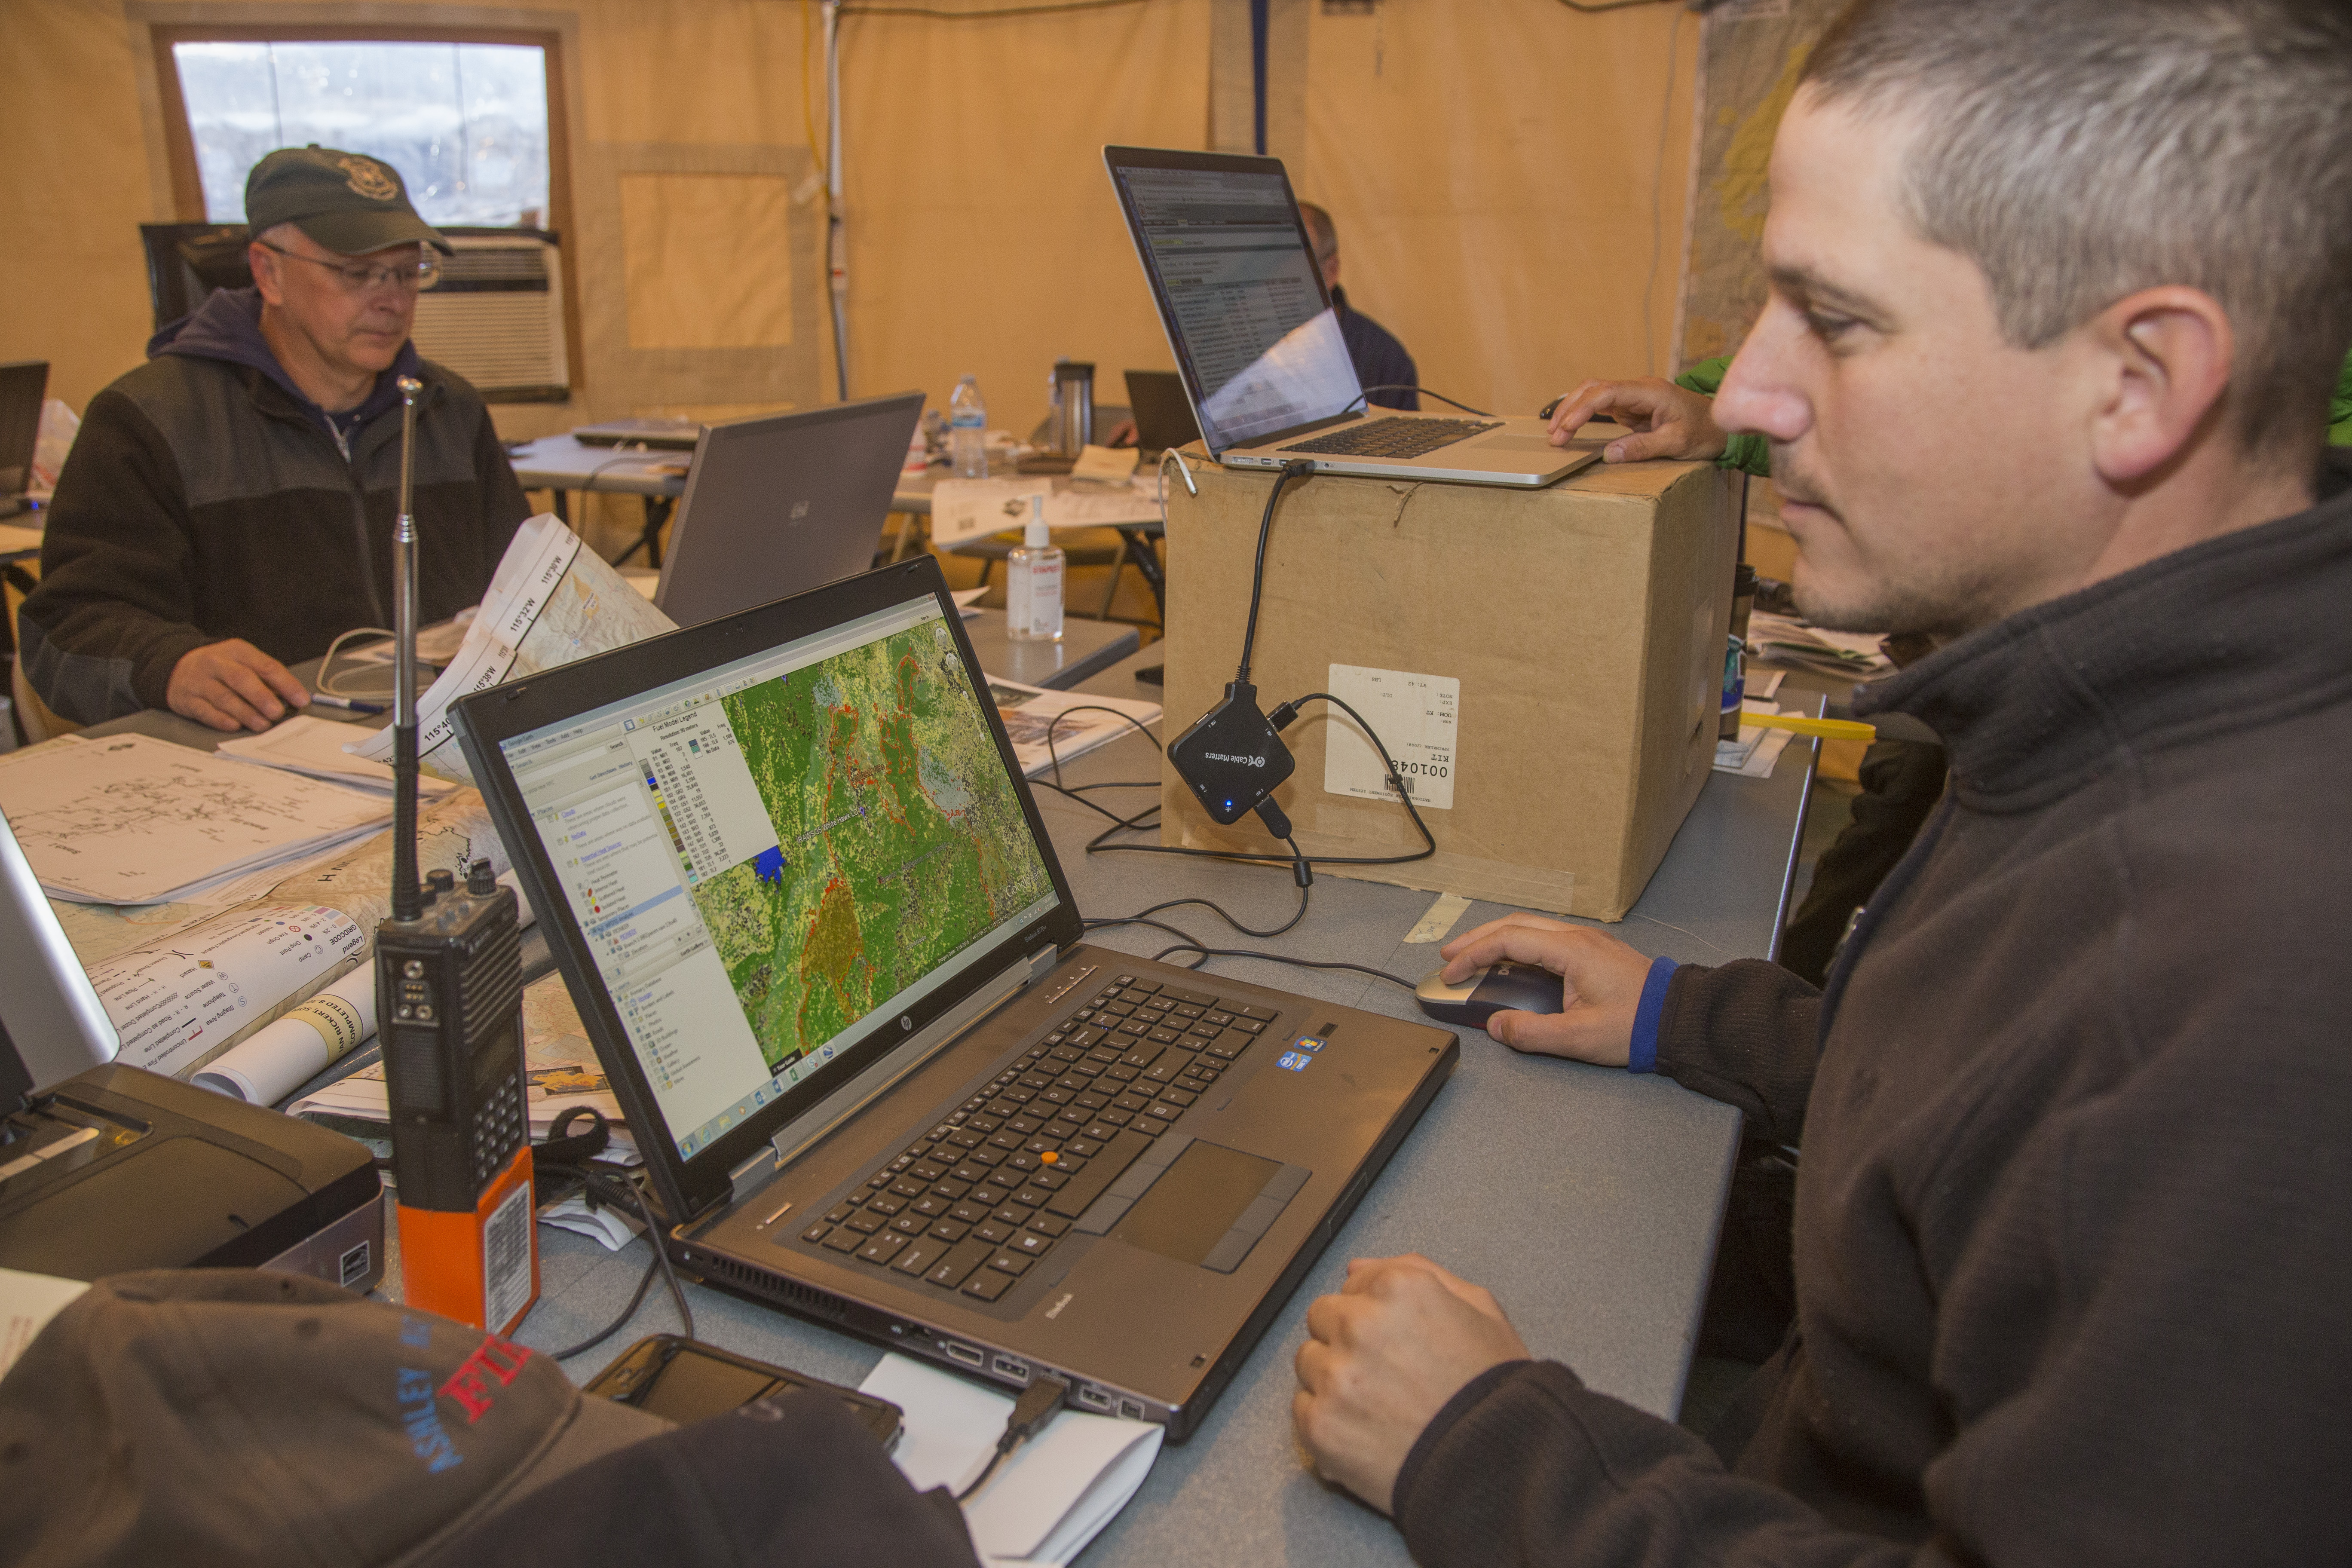 A picture of several members of a fire incident management team working on laptops.